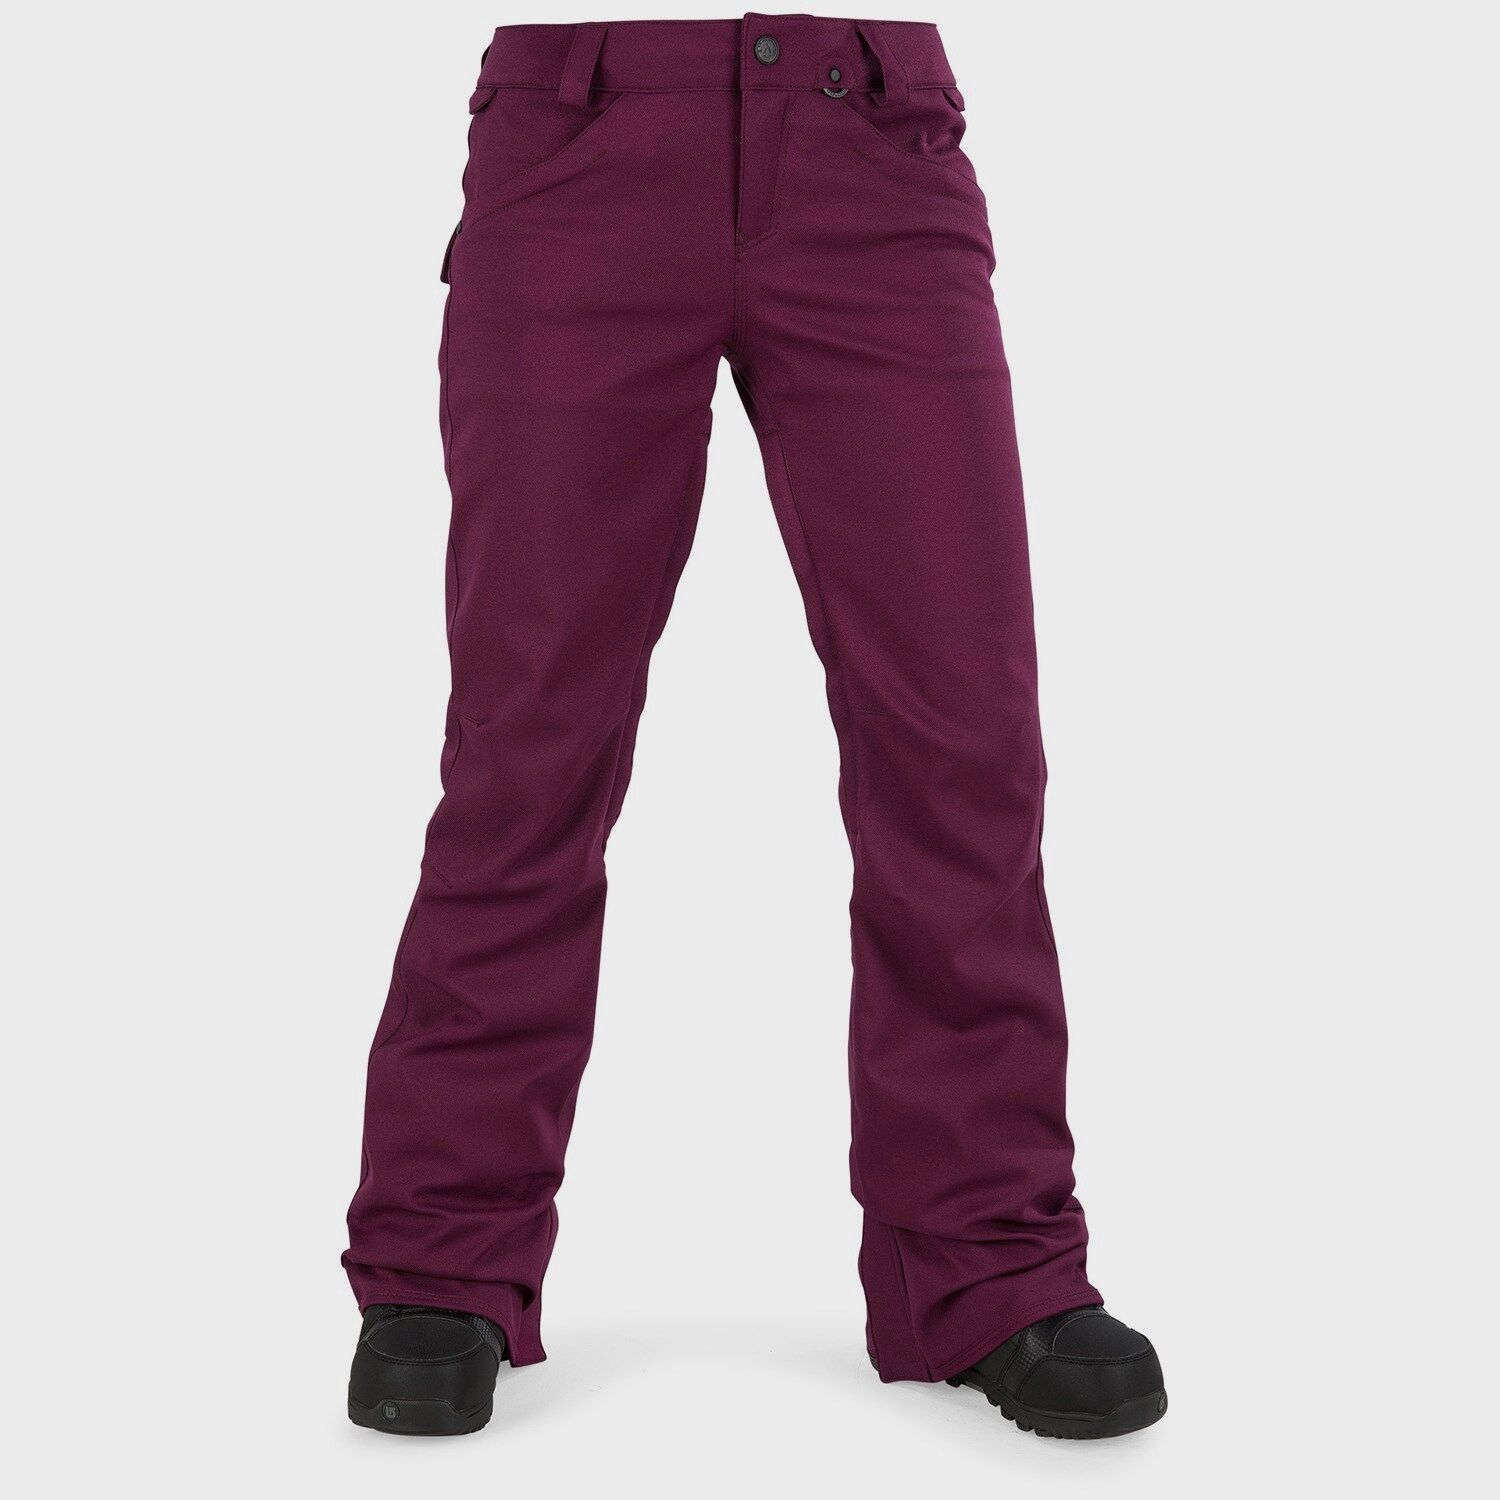 VOLCOM Women's  SPECIES STRETCH Snow Pants - ORC  Size Small - NWT LAST ONE LEFT